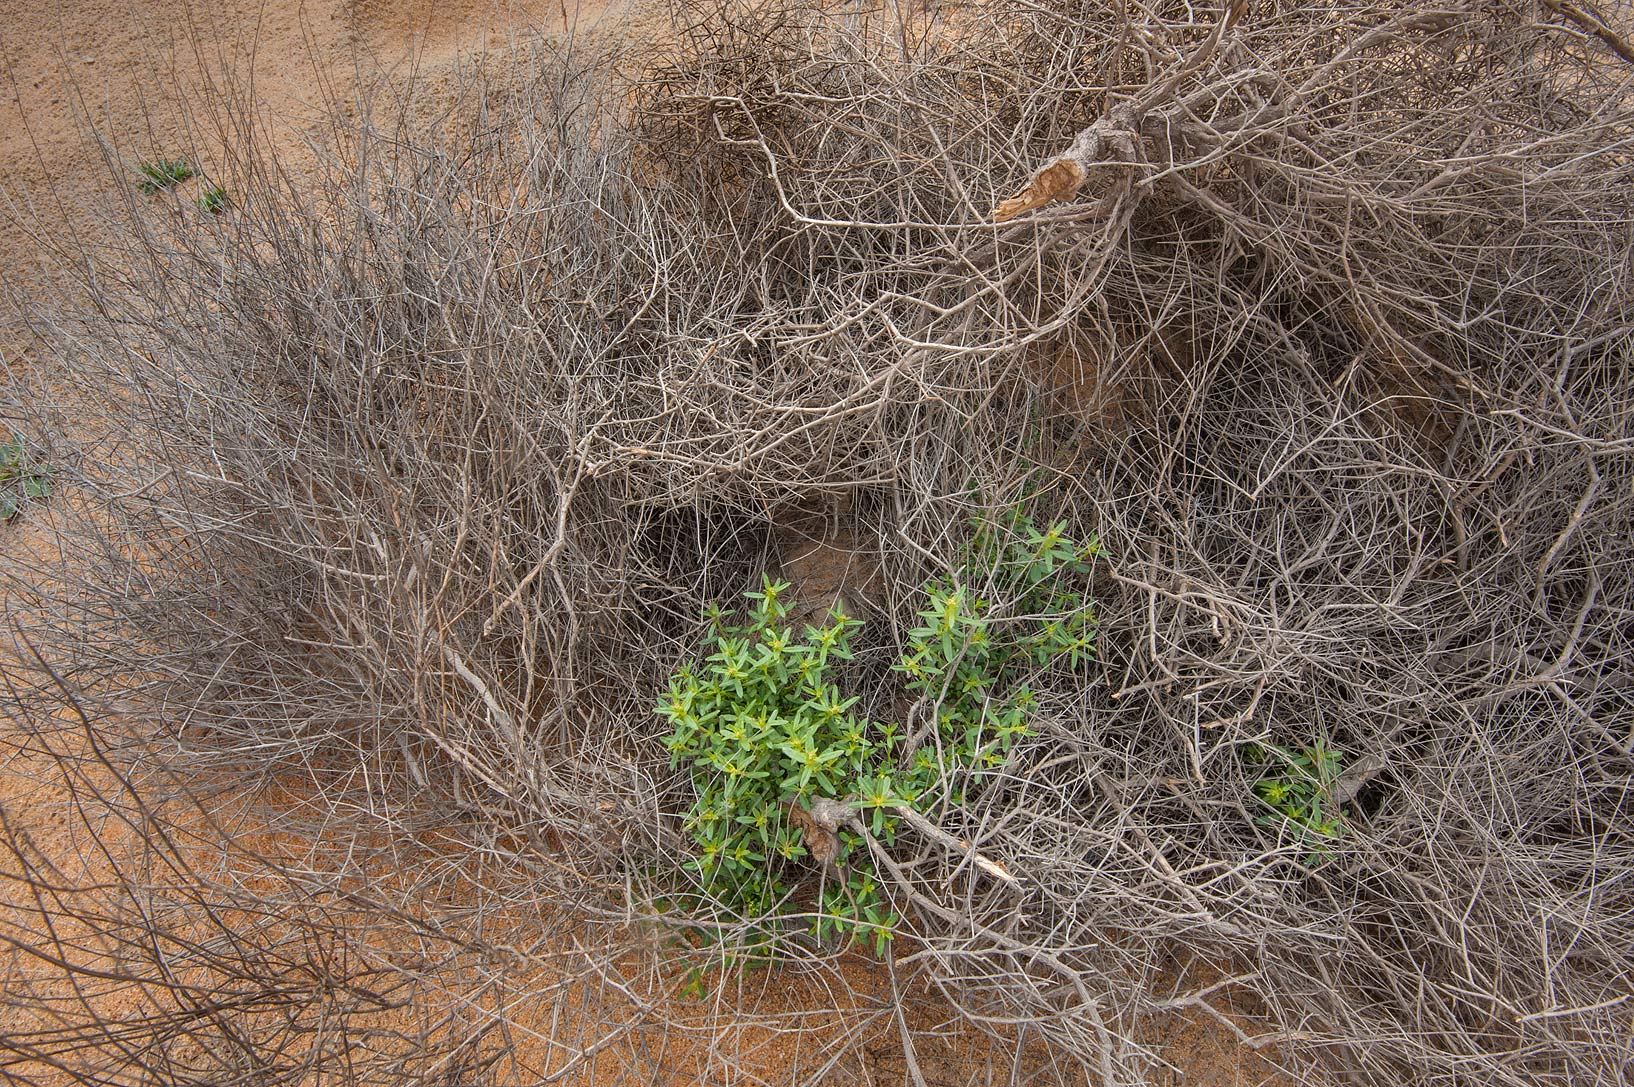 Fresh shoots and a dry plant of Dipterygium...Reserve near Abu Samra. Southern Qatar